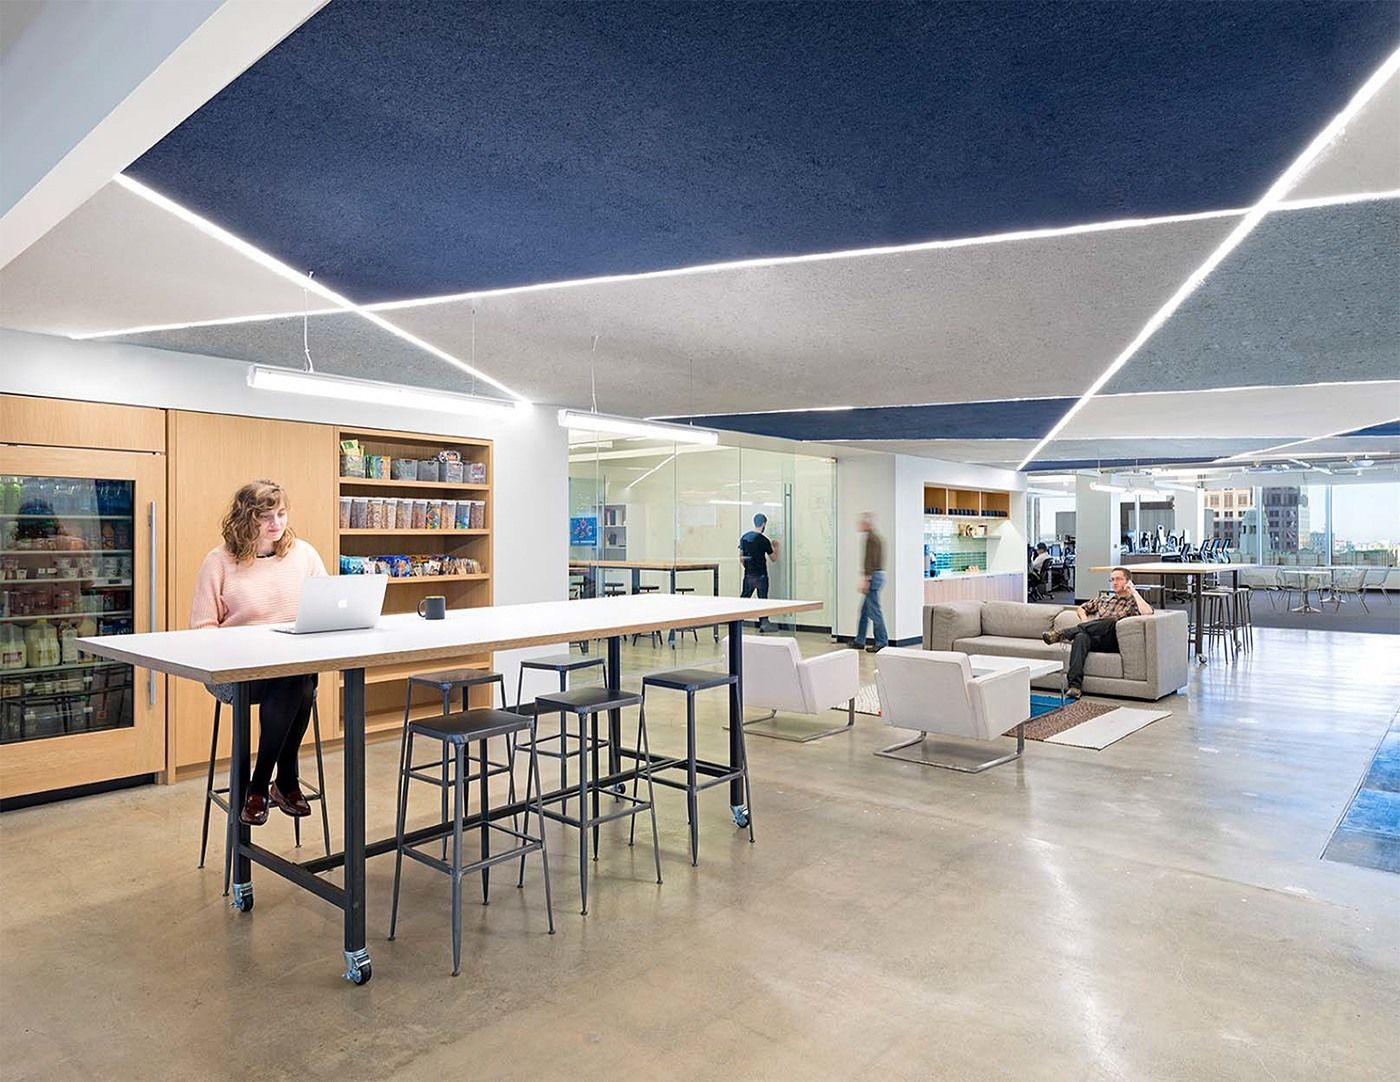 Another Look Inside Lookouts San Francisco Office Cool SpaceOffice SpacesOffice CeilingStartup